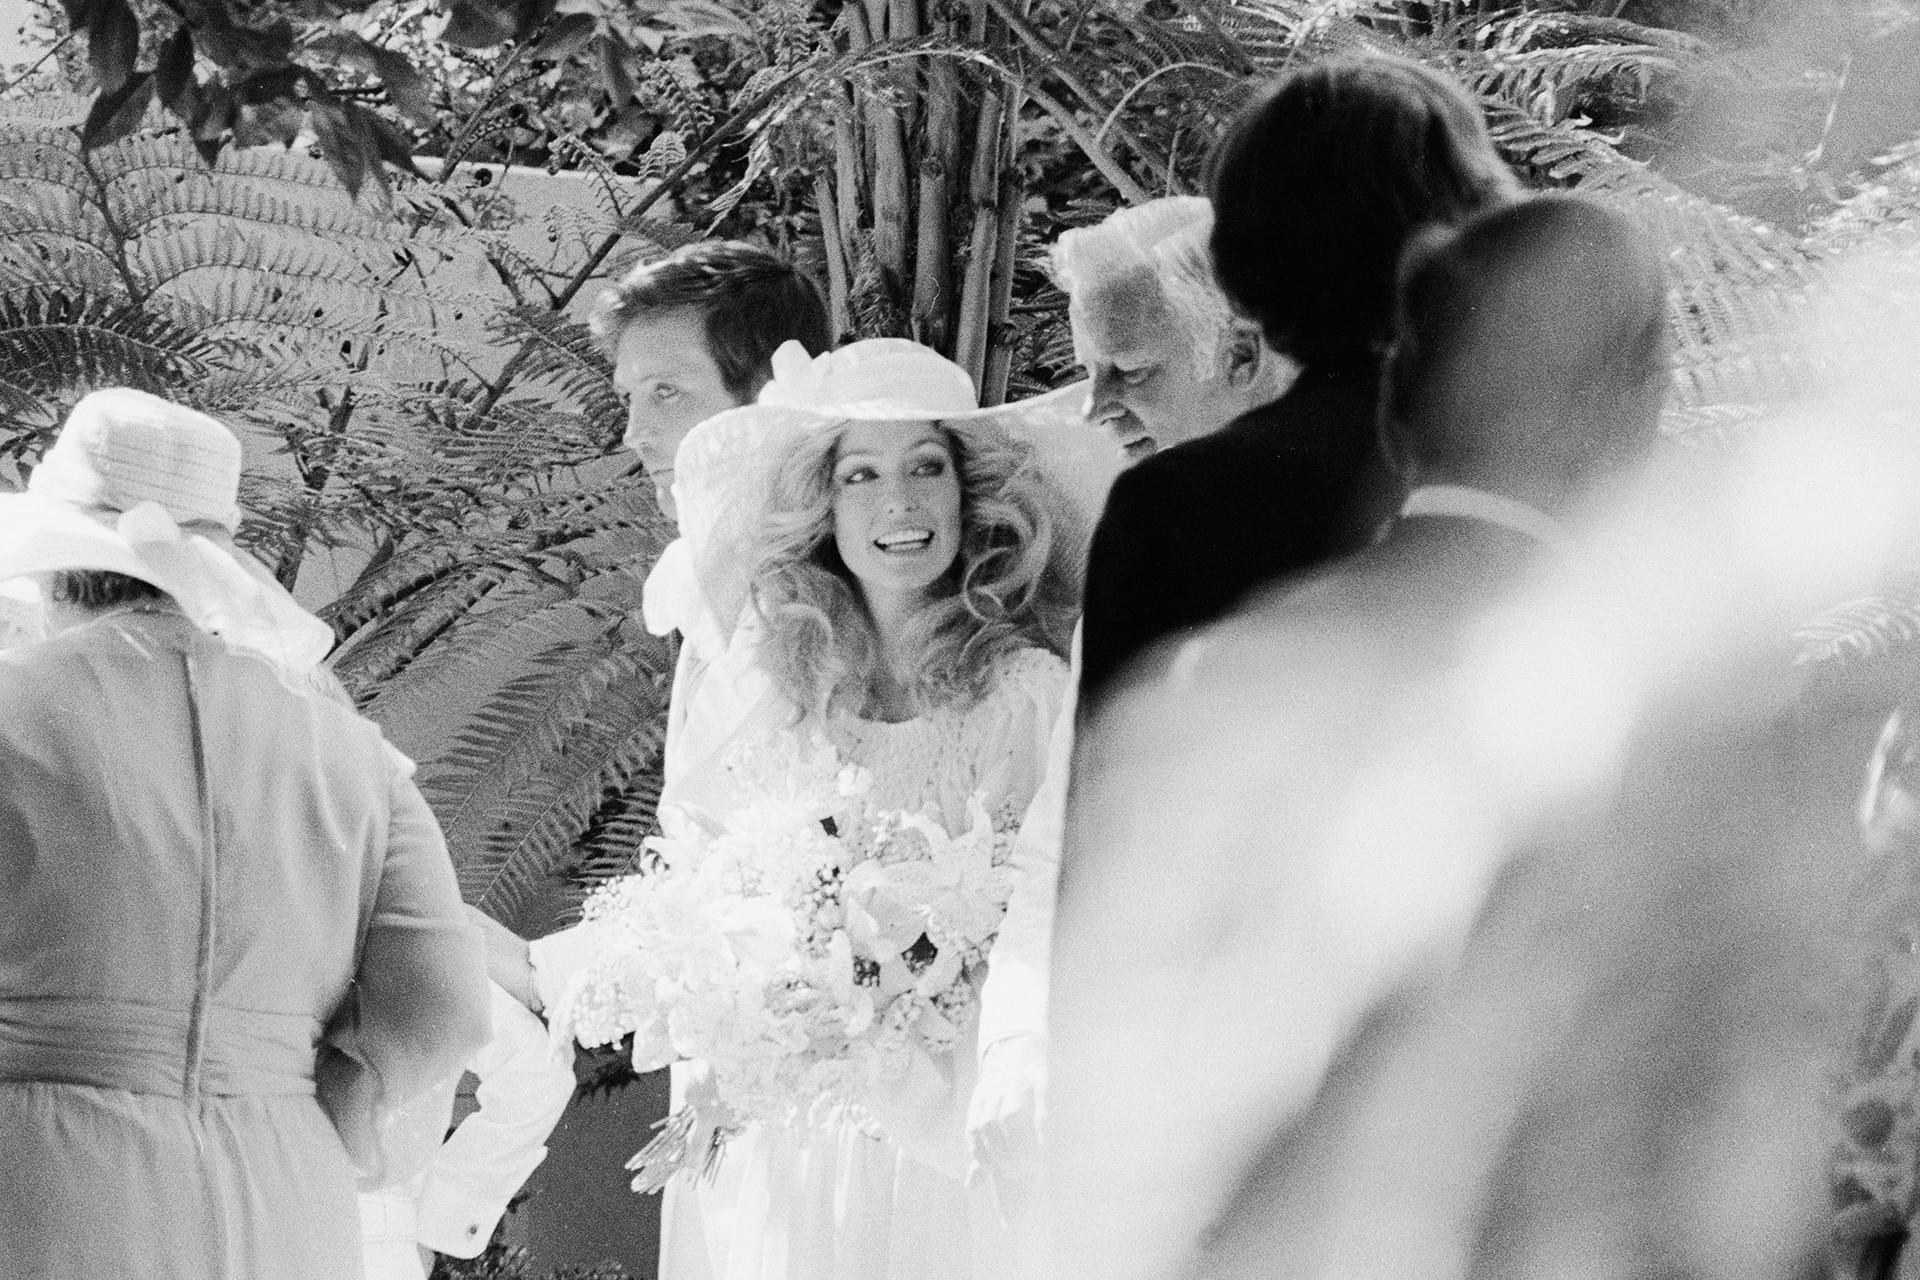 Farrah Fawcett at her wedding to Lee Majors July 28, 1973 in Los Angeles